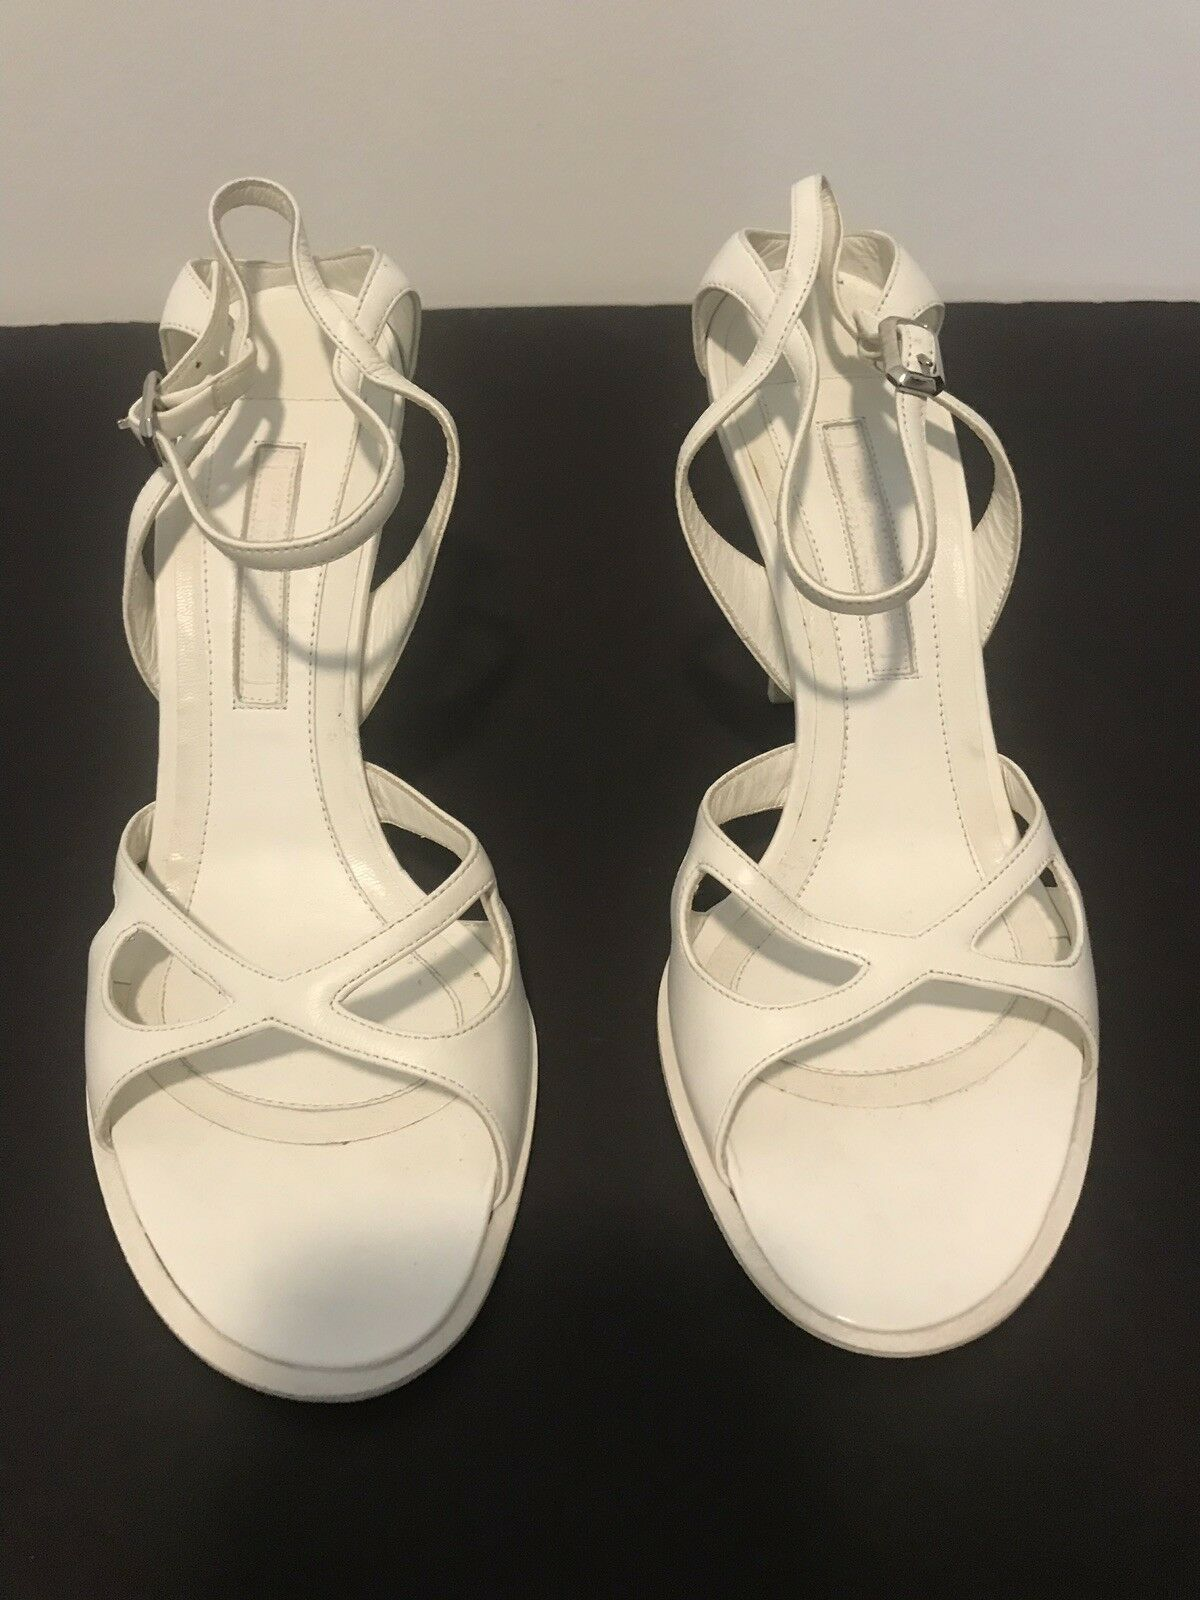 Narciso Narciso Narciso Rodriguez blanc high heel sandals, NWOTB, Made in  04a224